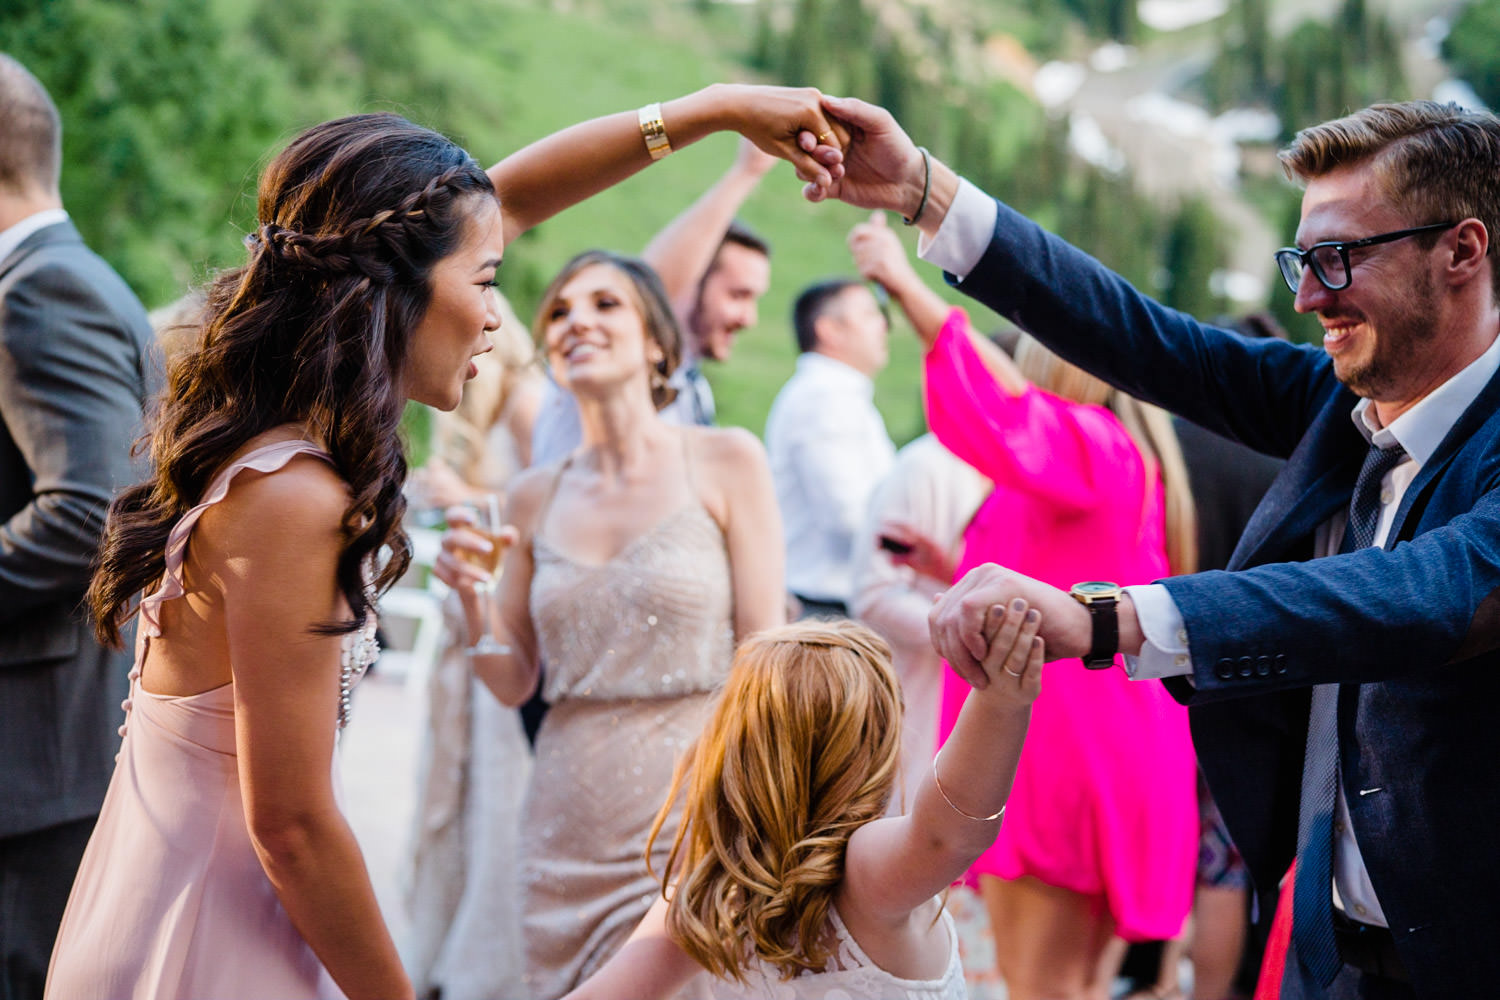 Alta Lodge wedding guests dancing with young girl photo